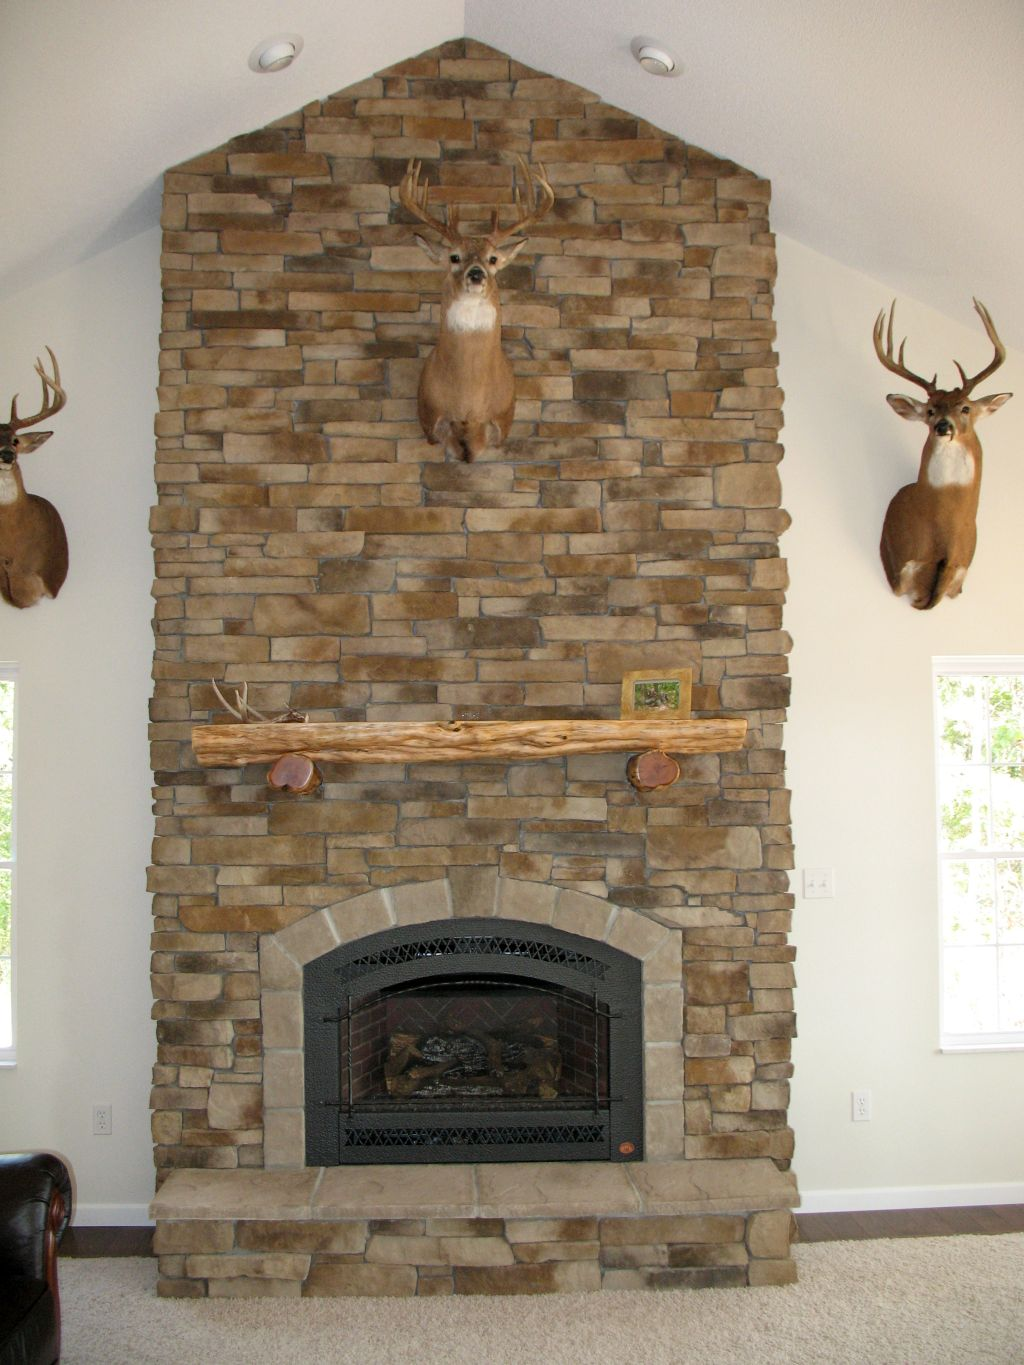 Rustic stack stone fireplaces for lodge for Rustic rock fireplace designs